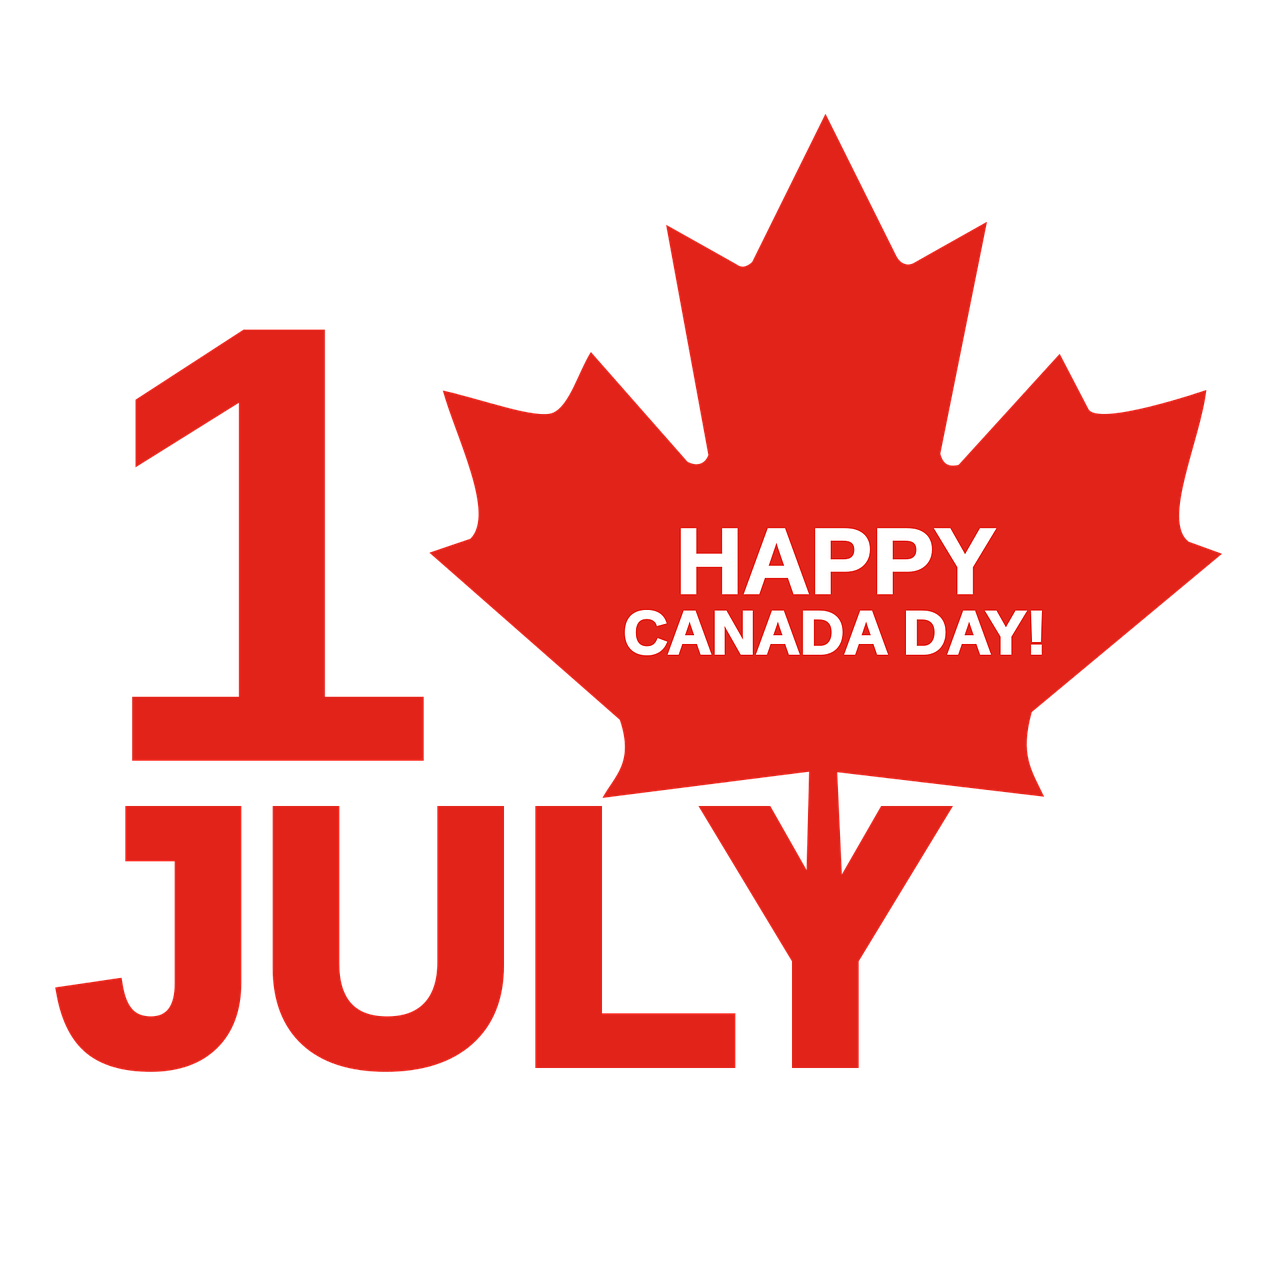 Happy Canada Day Wishes, Greetings Messages – July 1st Celebrate Canada Day